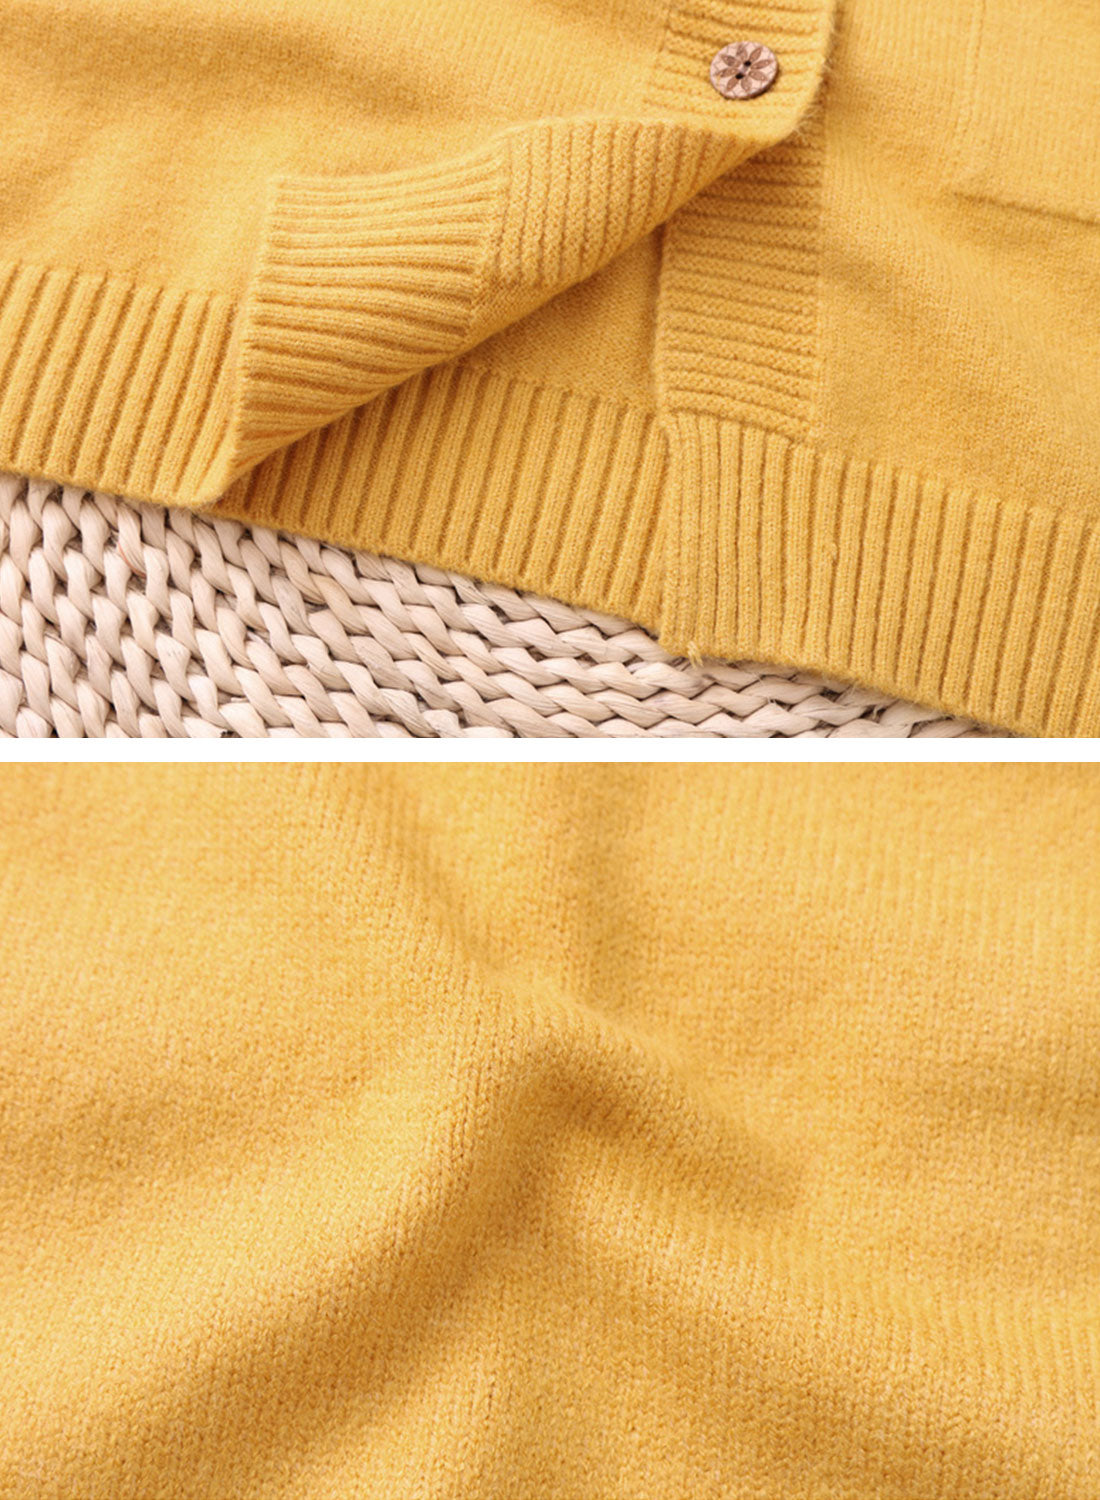 Fozy Little Thing Cardigan Sweater Details  4